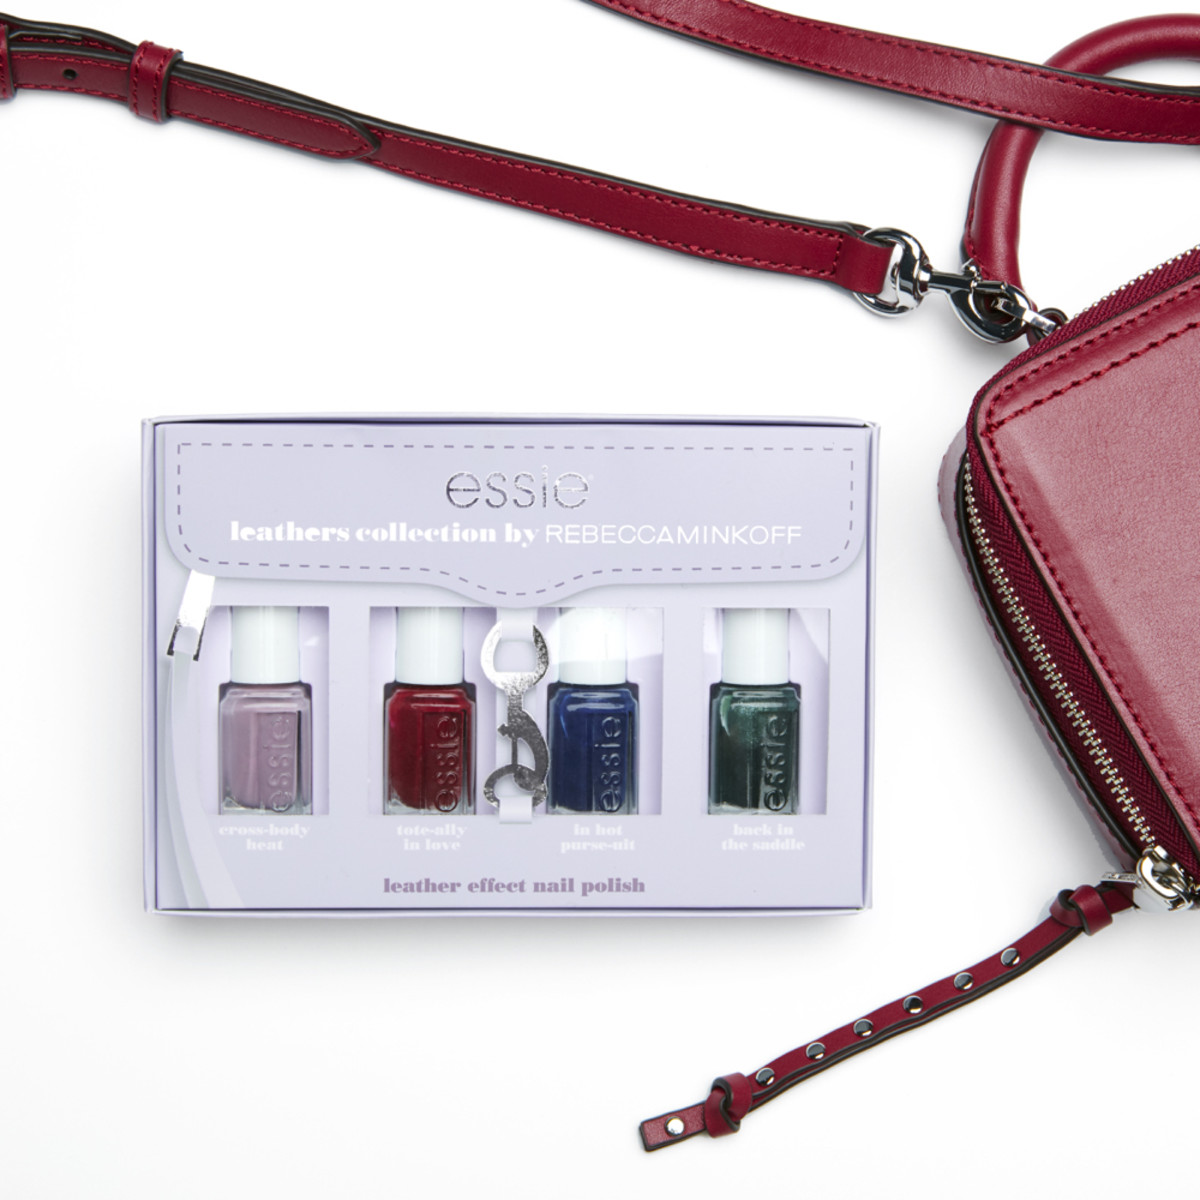 Essie Leathers Collection by Rebecca Minkoff (essie canada)